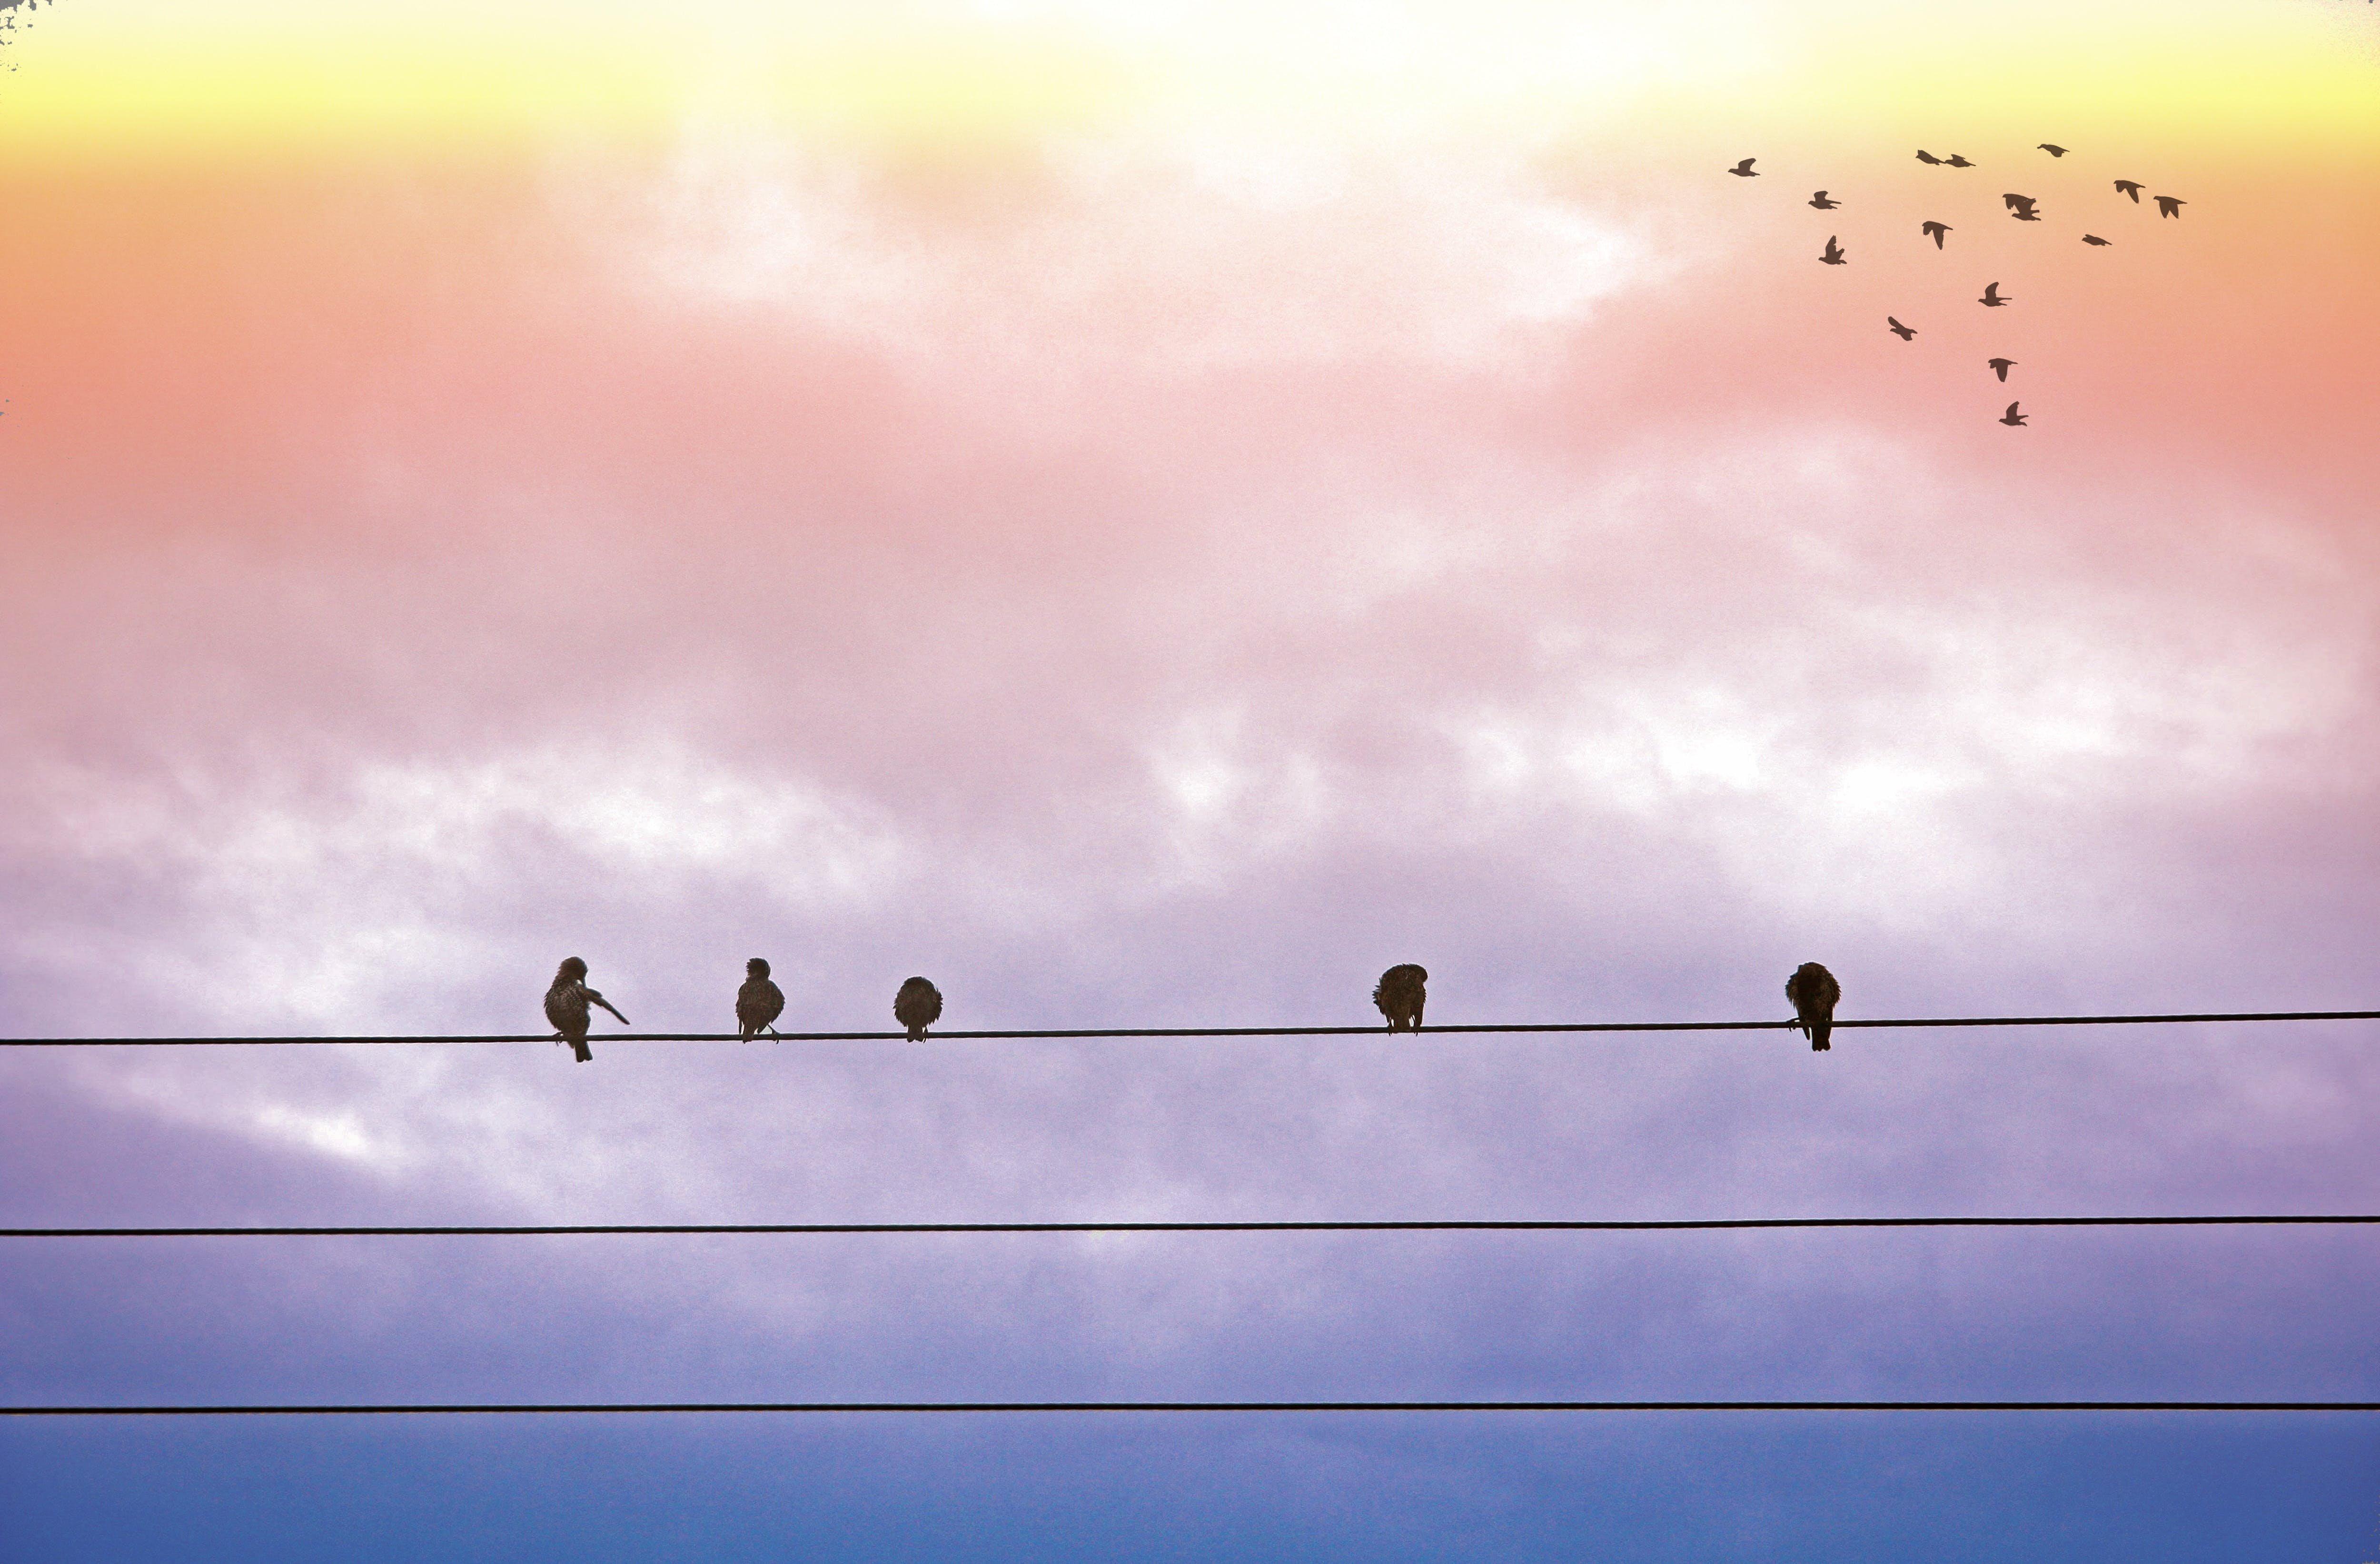 5 Black Feather Bird Standing on Electric Cable